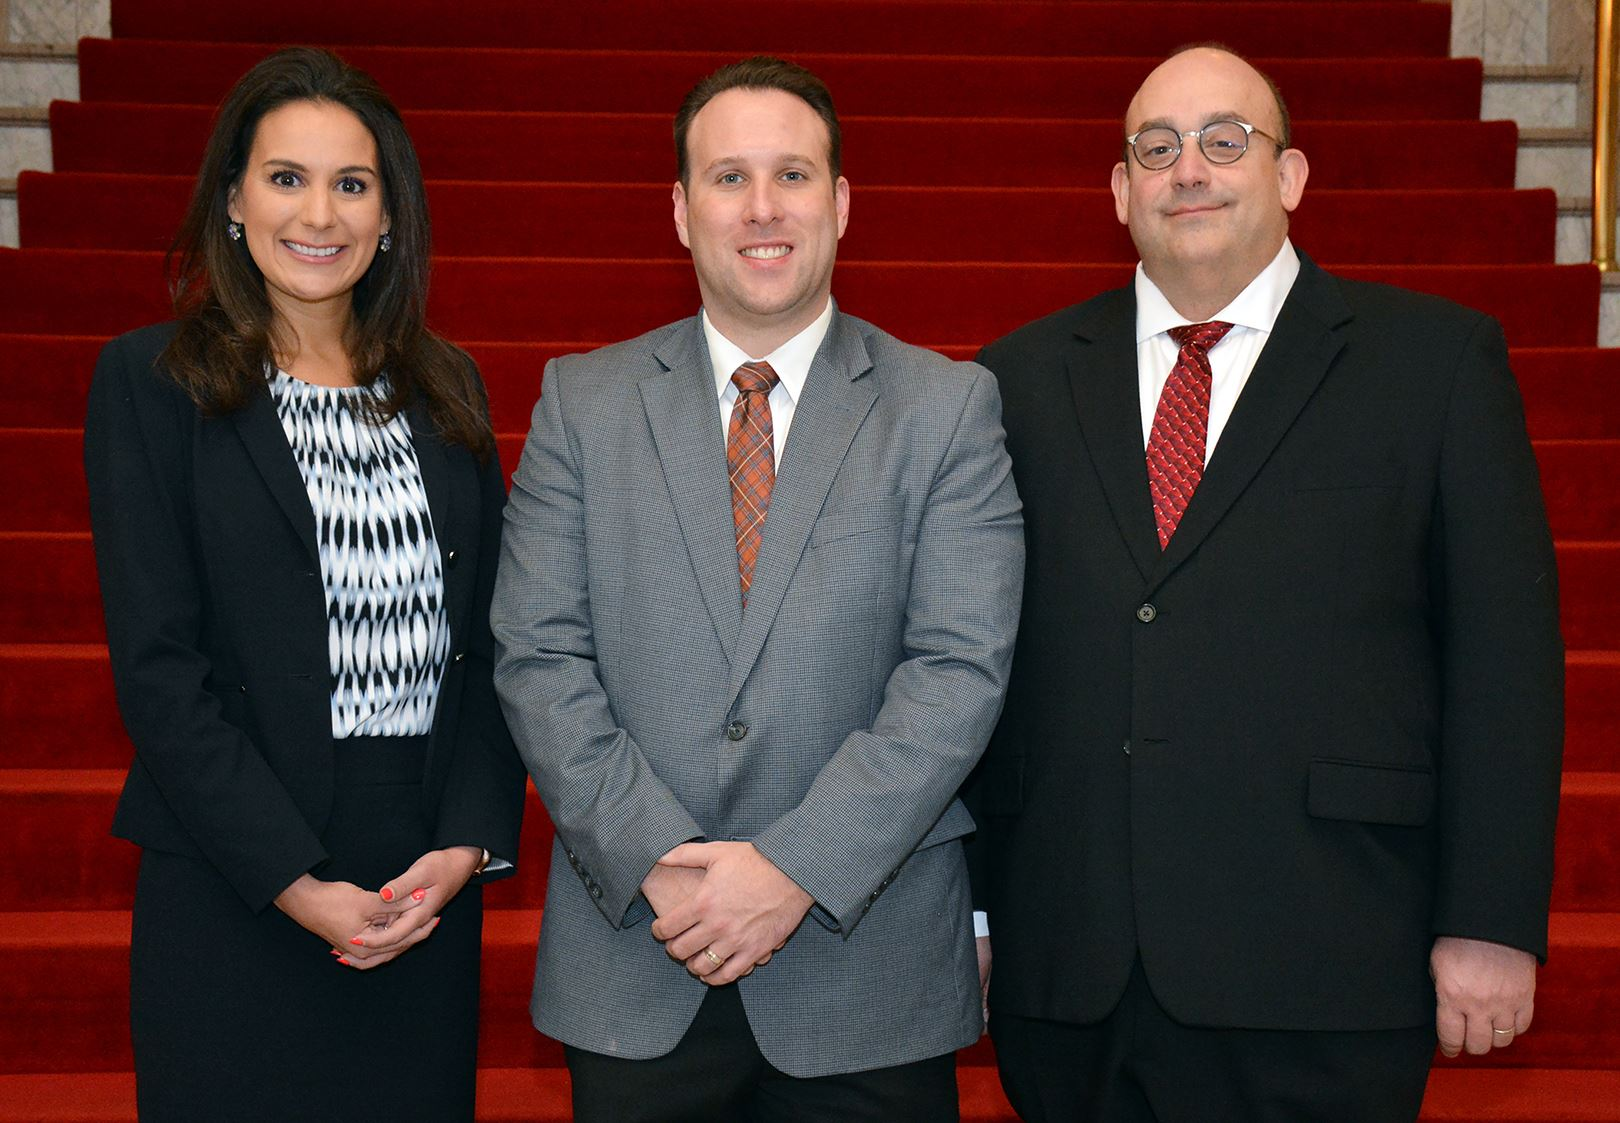 Secretary Gina Cerilli, Chairperson Sean Kertes and Vice Chairperson Douglas Chew